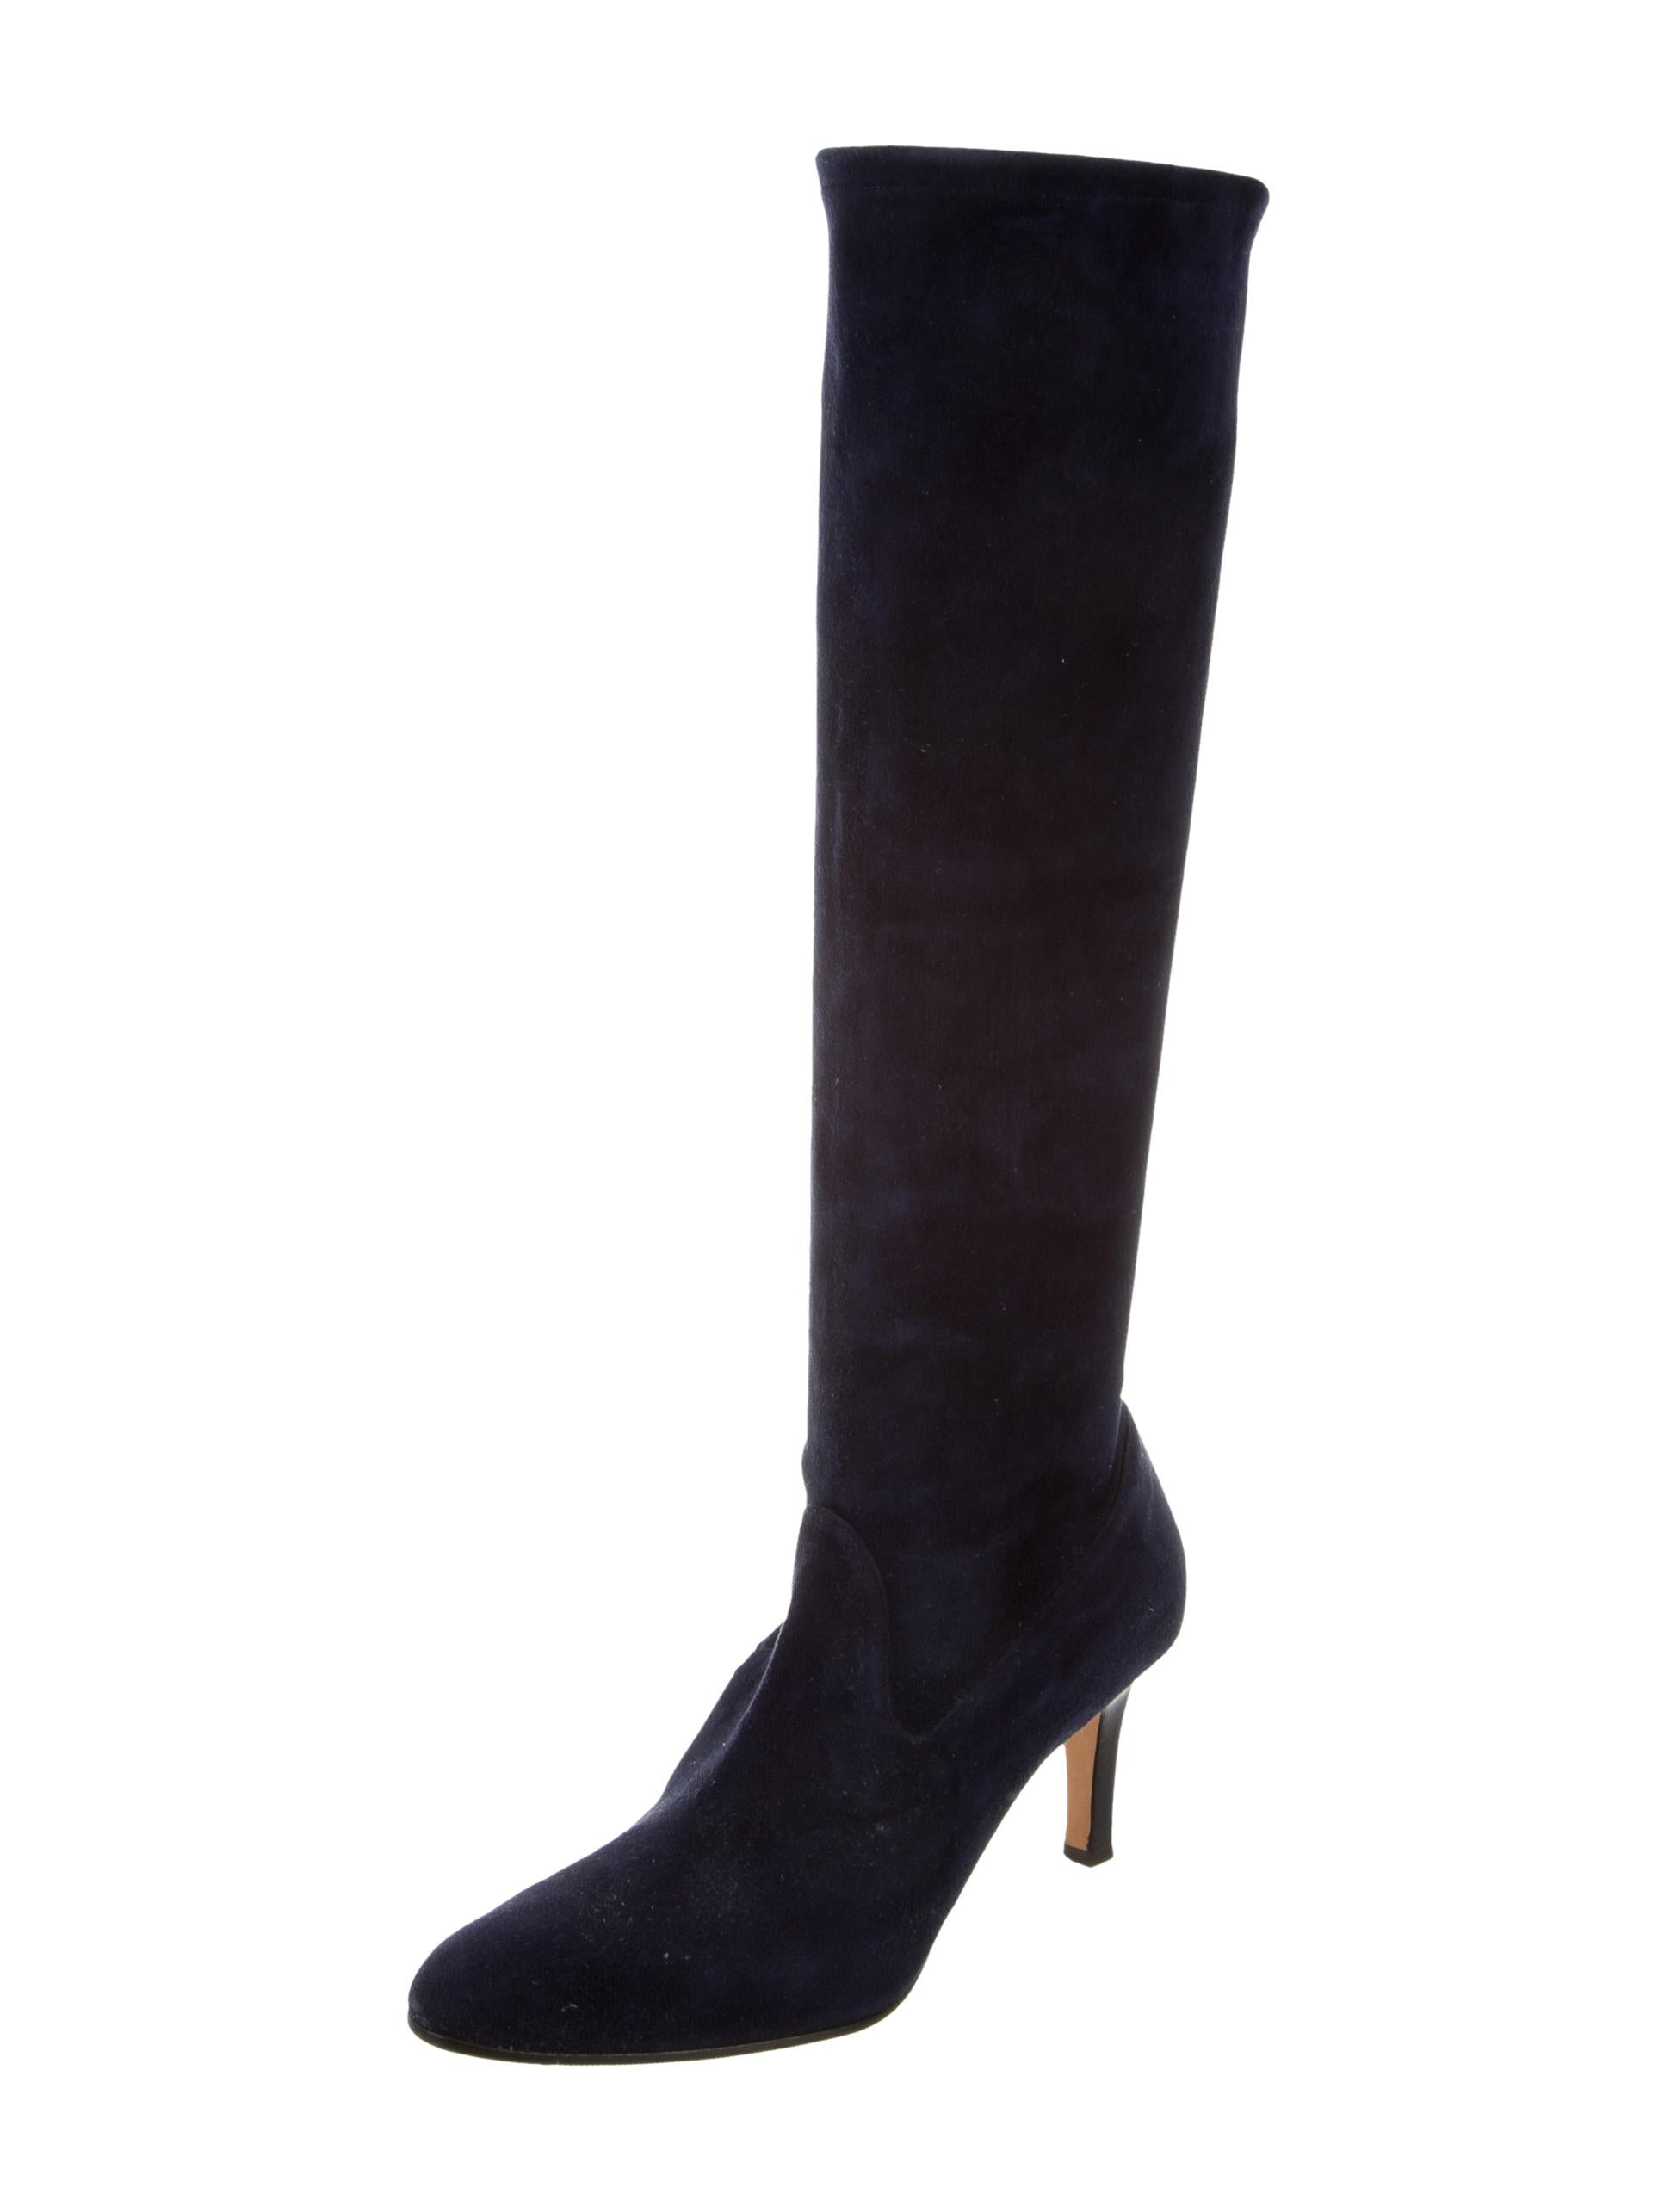 manolo blahnik knee high suede boots shoes moo60382